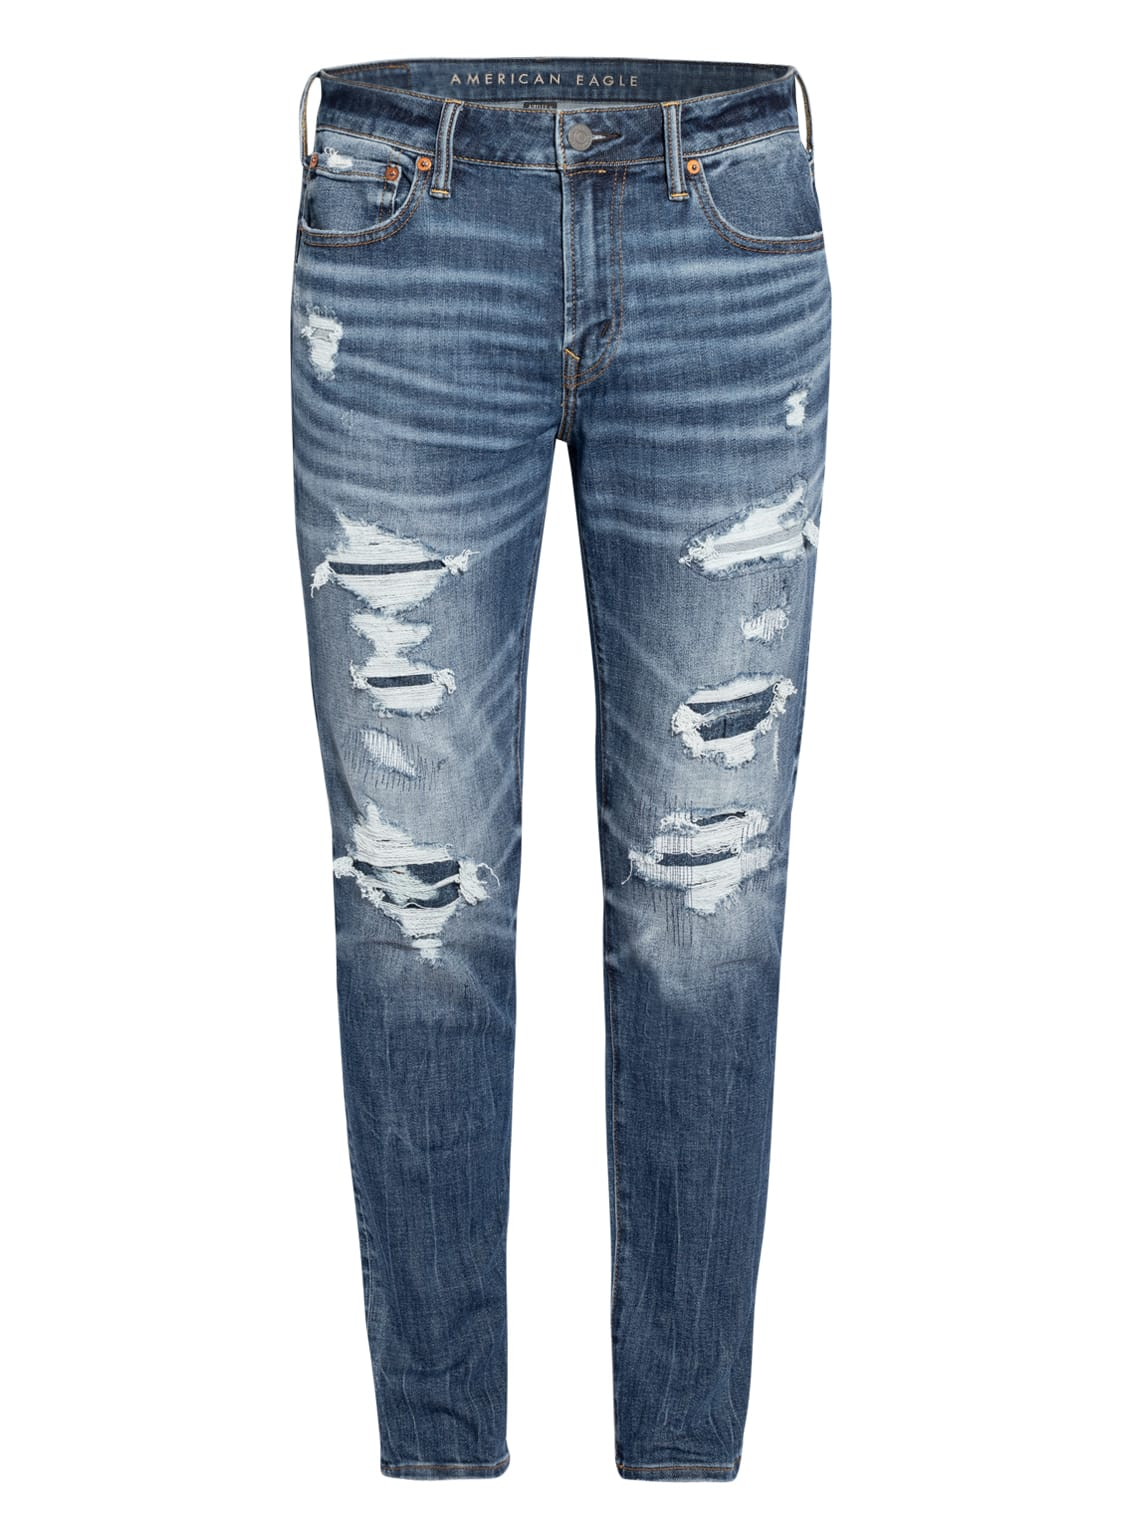 Image of American Eagle Destroyed Jeans Airflex+ Athletic Skinny Fit blau